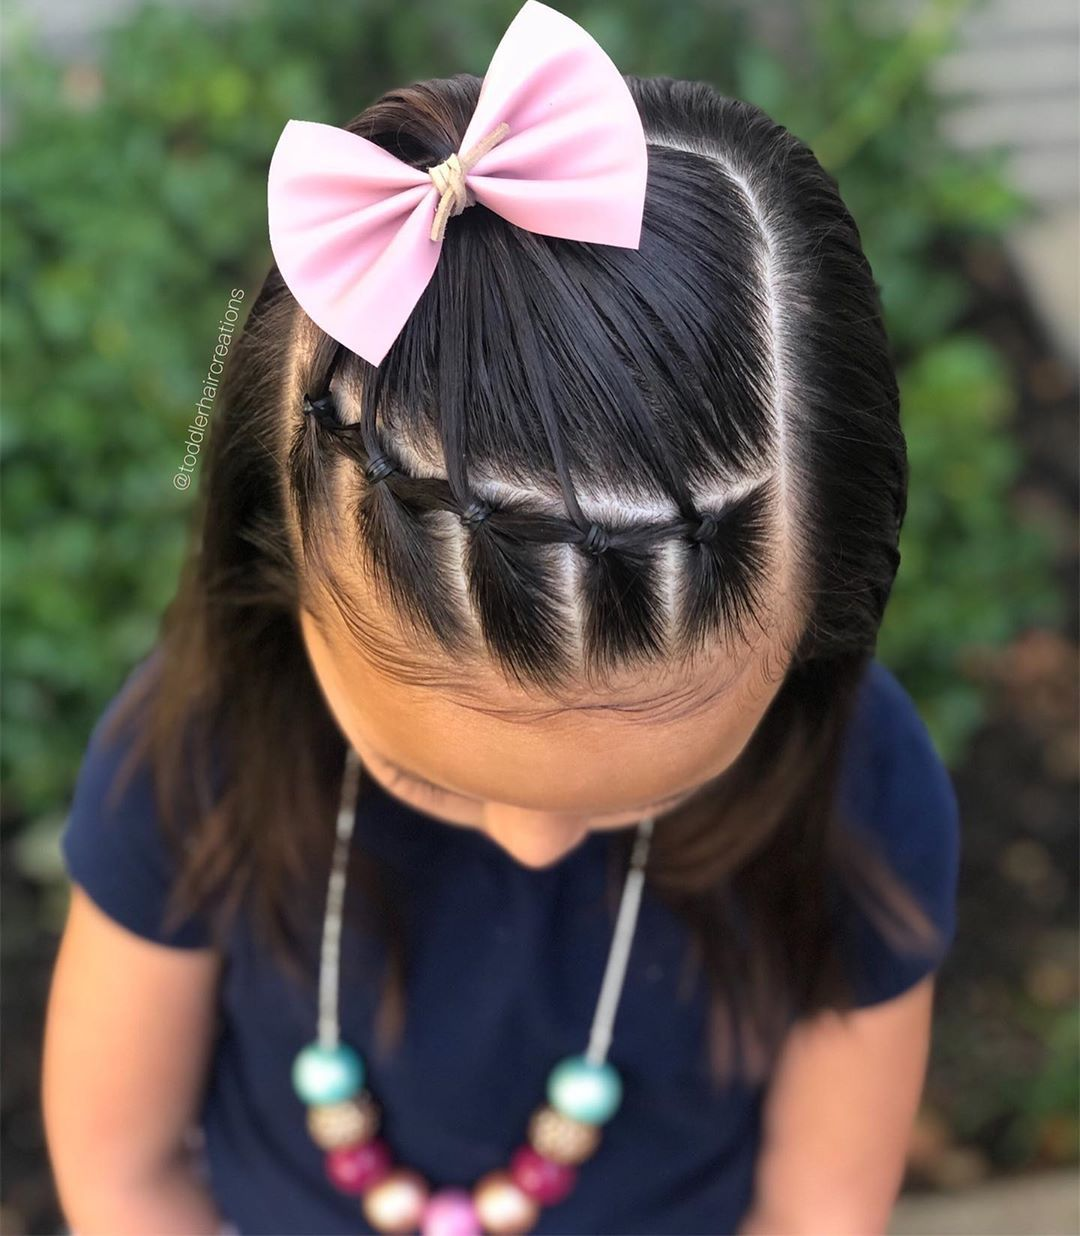 """Amber 🎀🌸💜 on Instagram: """"Happy Friday! Today's style is connecting sections pulled back into a small half up style. 🎀🌸💜 This was inspired by Sara…"""""""